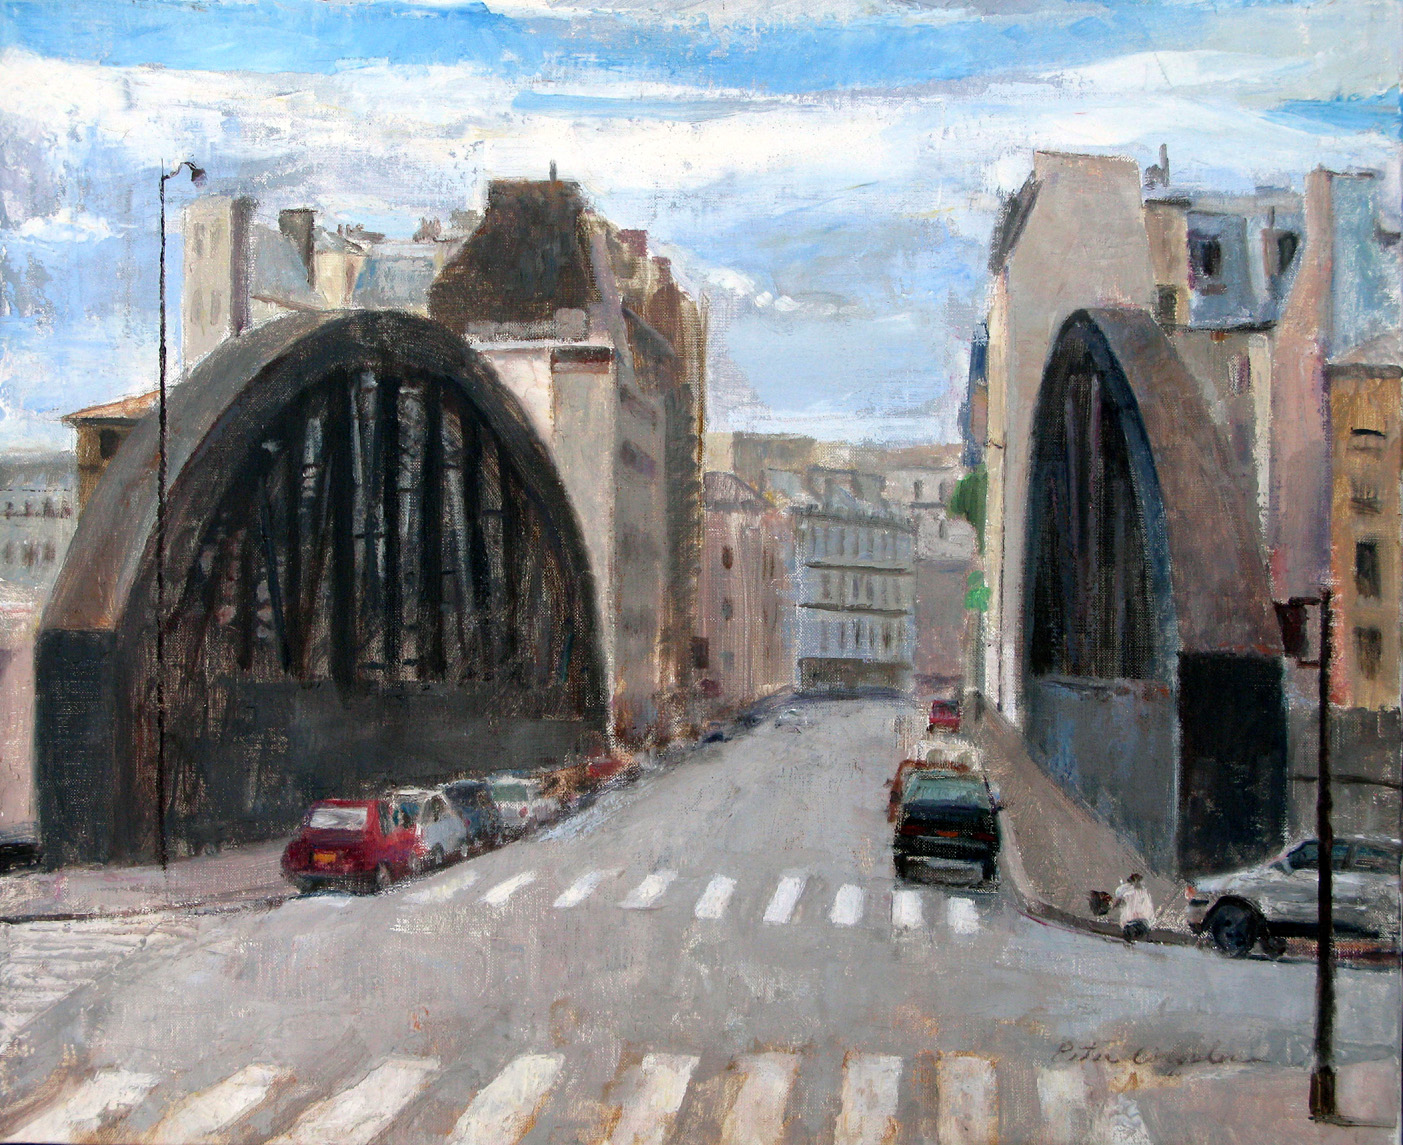 "Rue Aqueduc, 19"" x 24"", oil on linen"